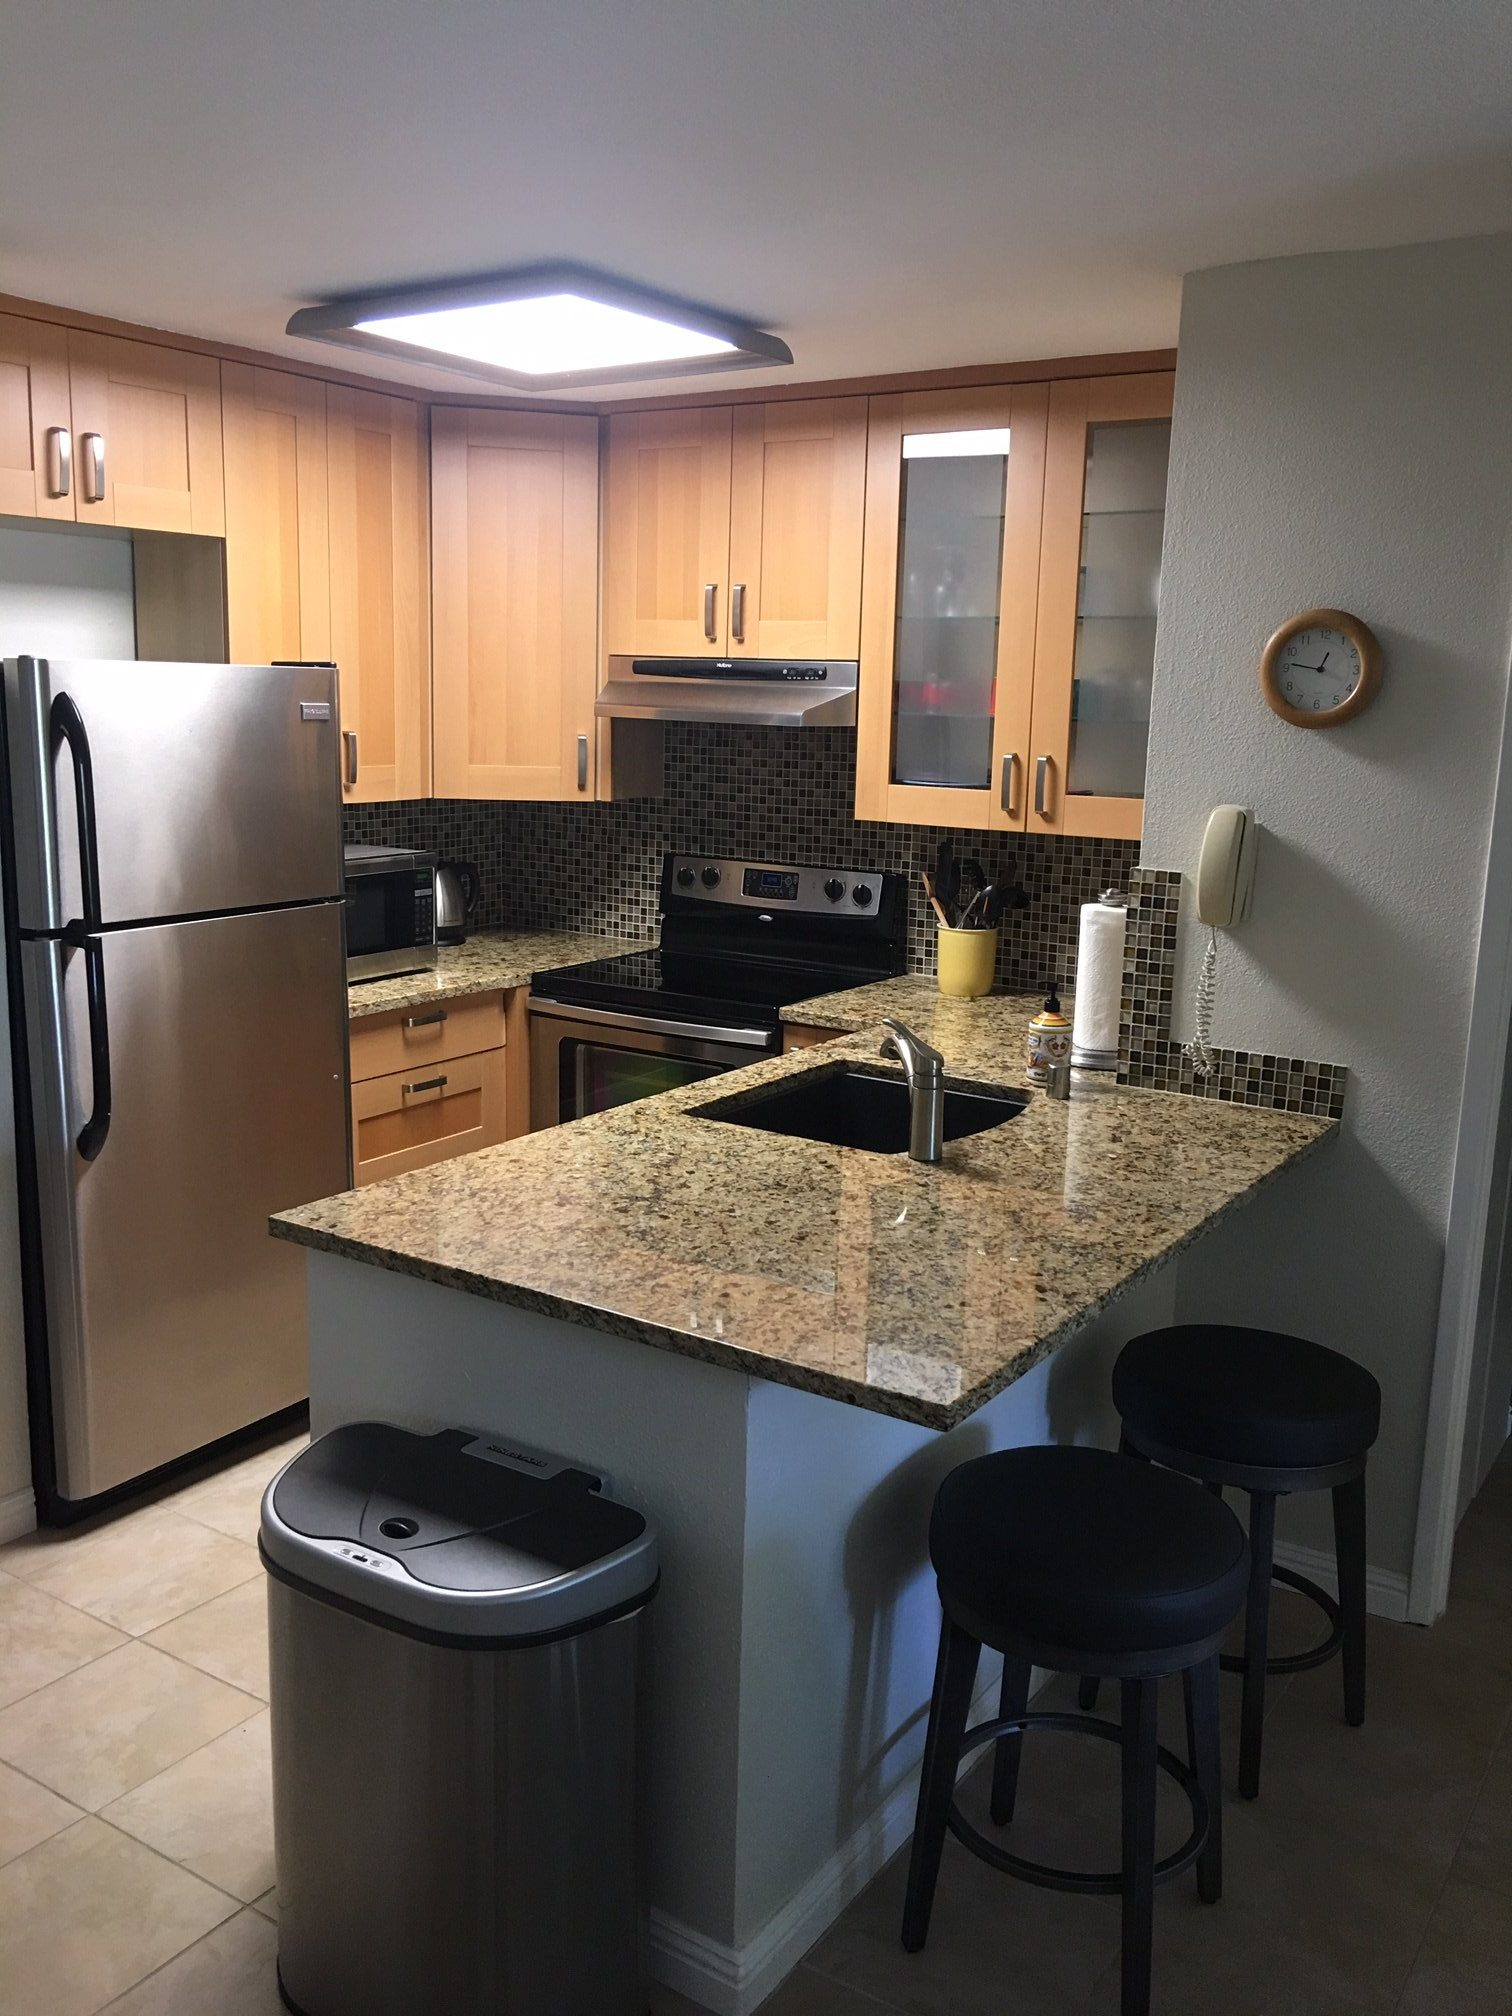 Unit F-106 Kitchen with stainless steel appliances, and breakfast bar with 2 stools